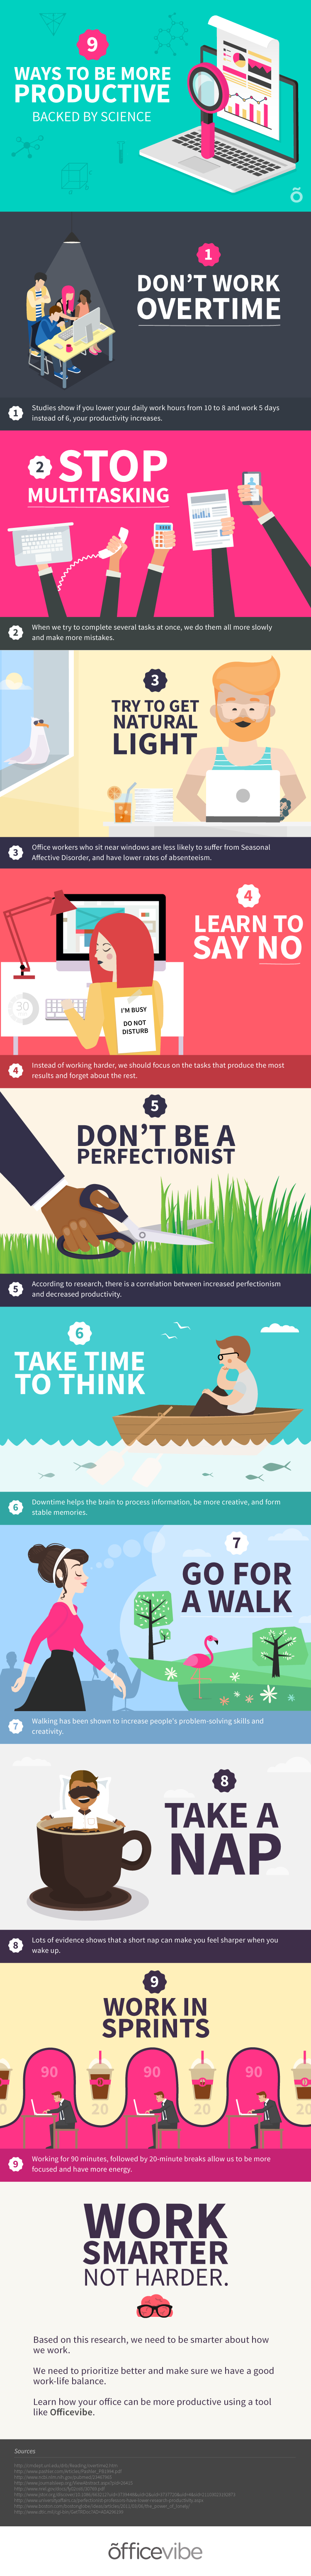 How To Be More Productive At Work; Backed By Science